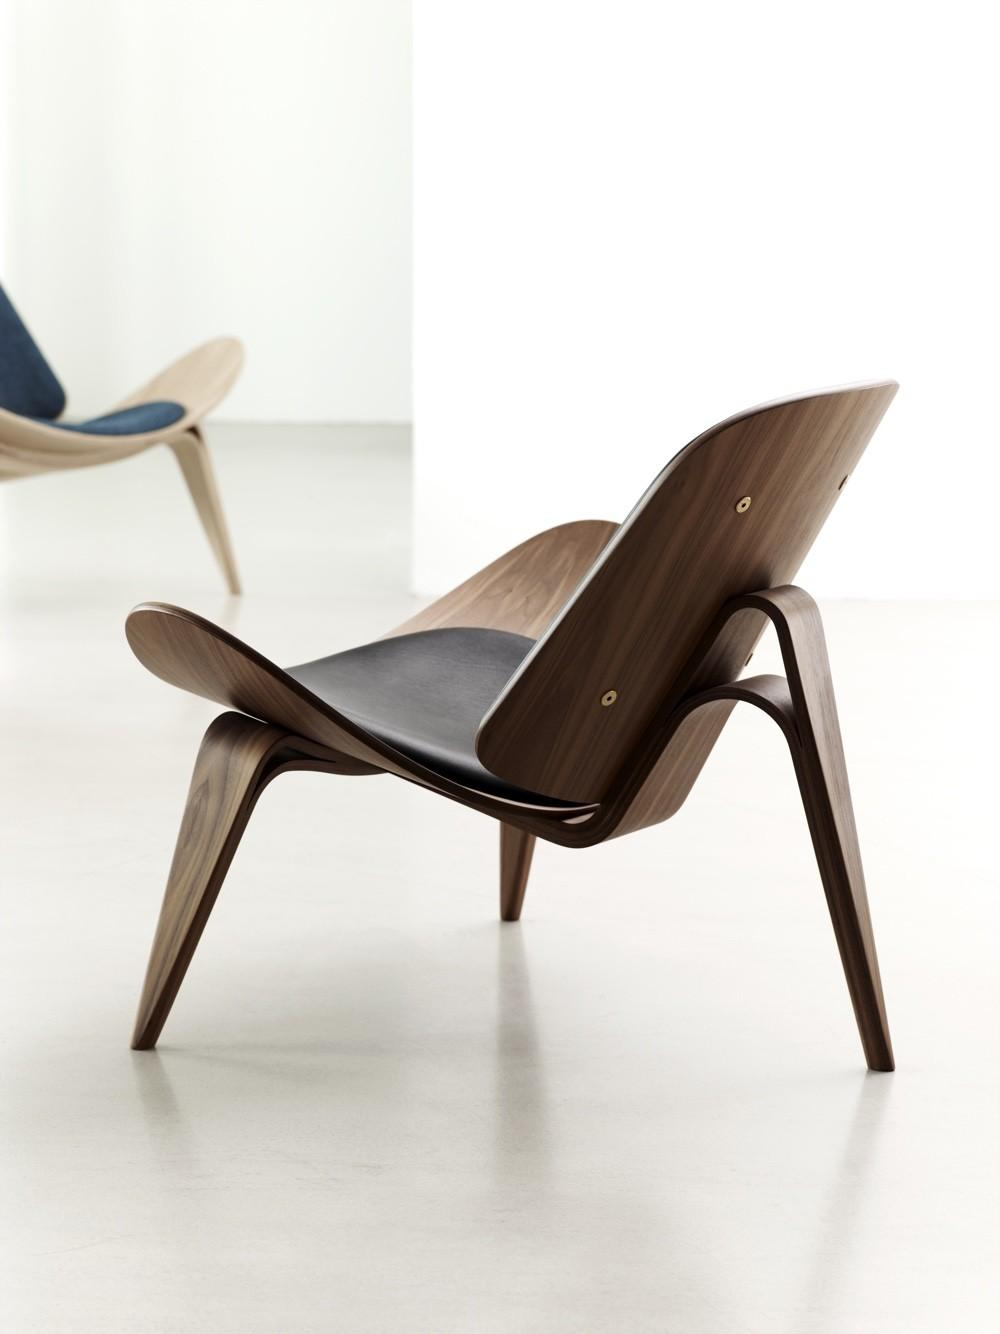 Iconic Chair Designs 1920s 2000s